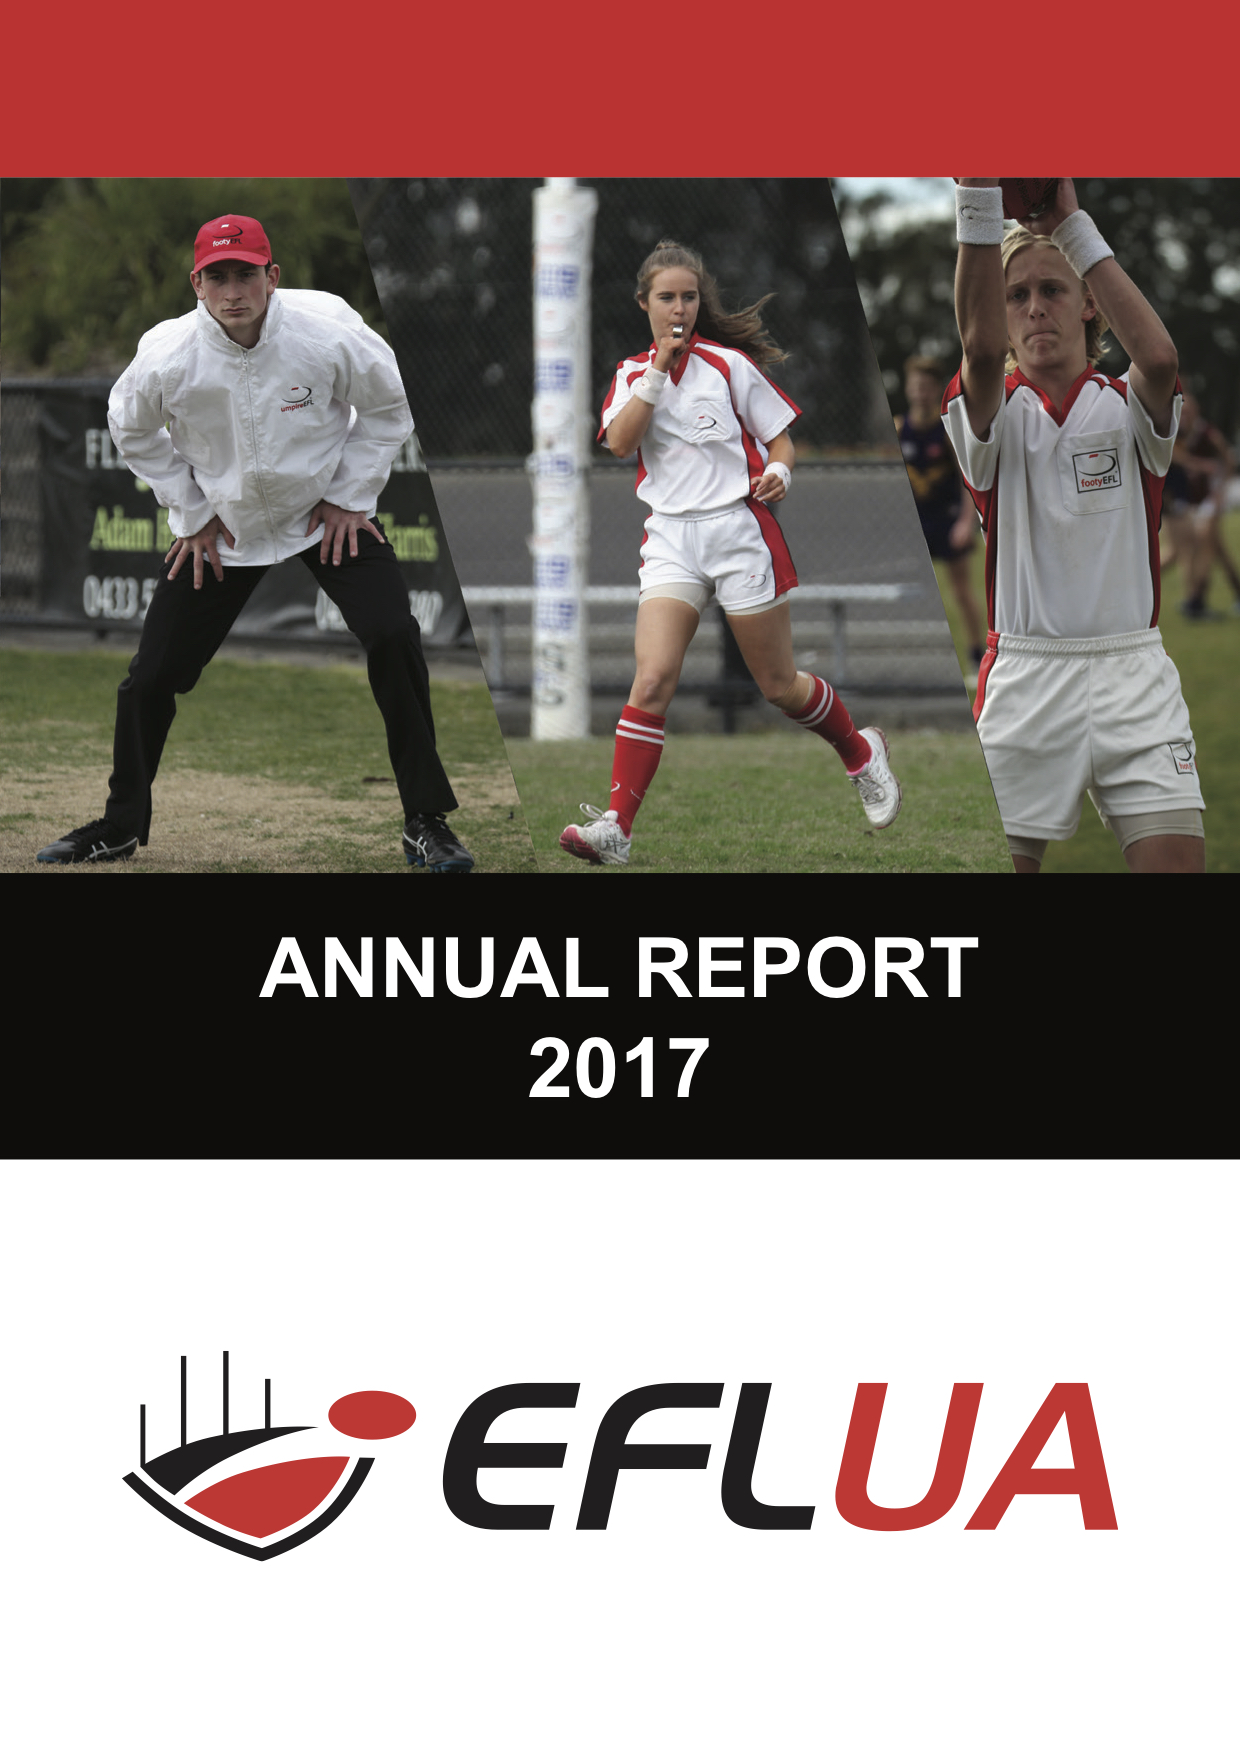 2017 Annual Report IMAGE.jpg